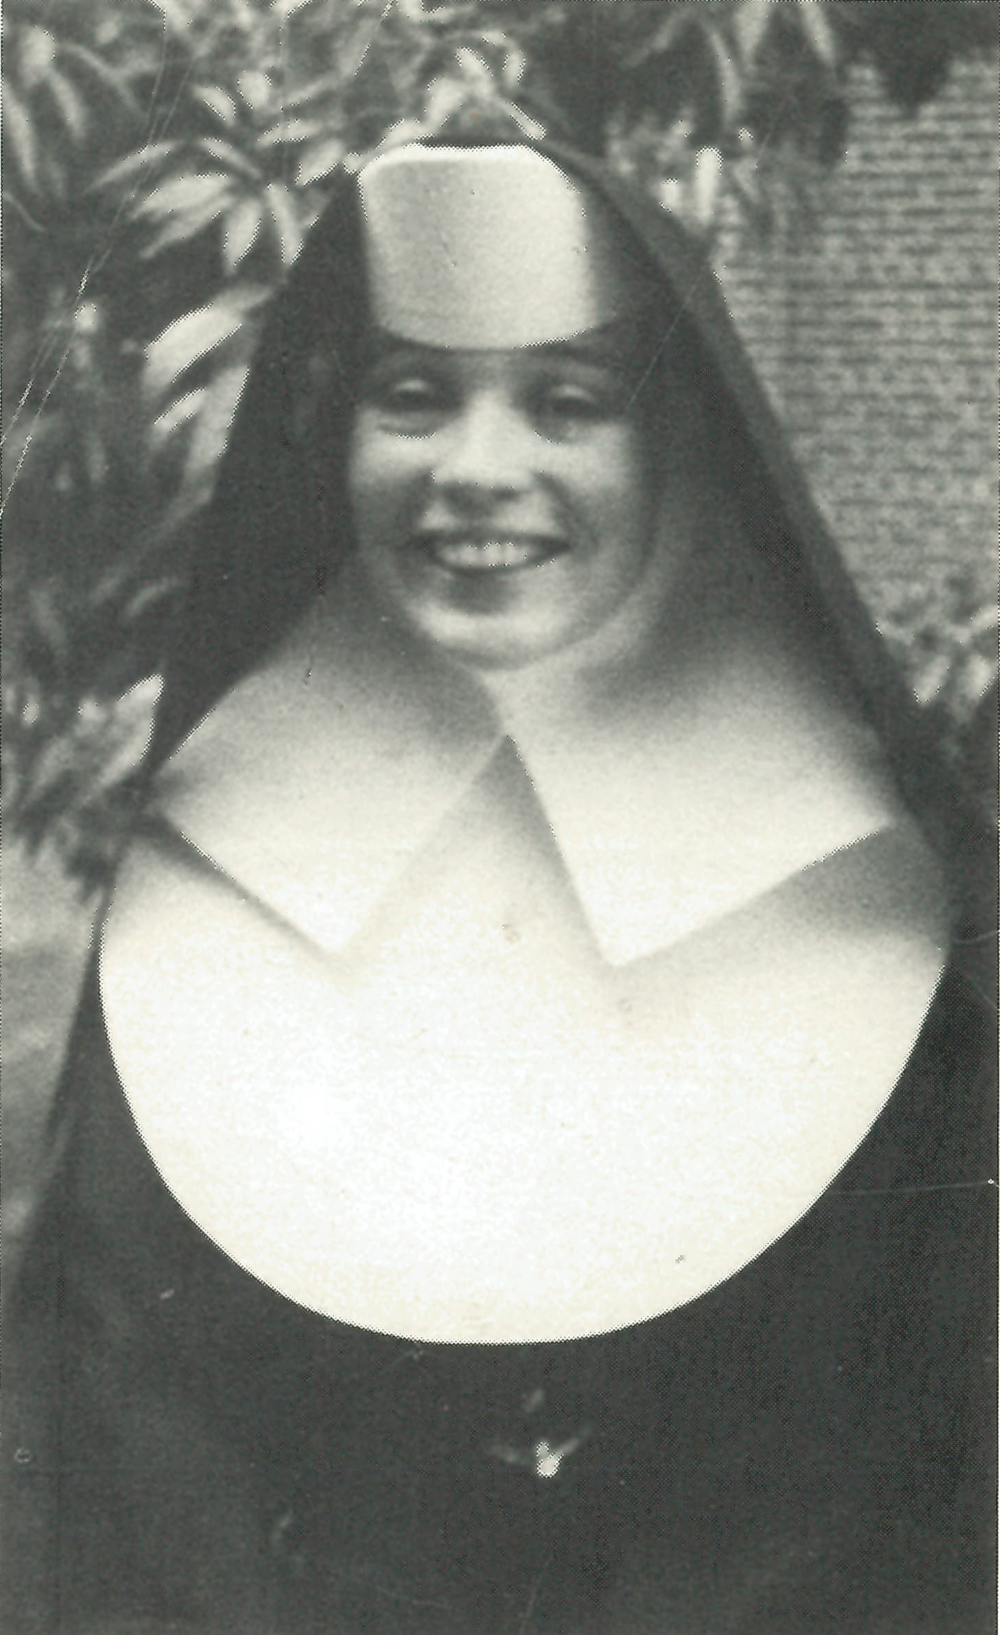 After joining the Sisters of Mercy convent, Arlene Violet decided to go to Boston College Law School. Courtesy of Arlene Violet.